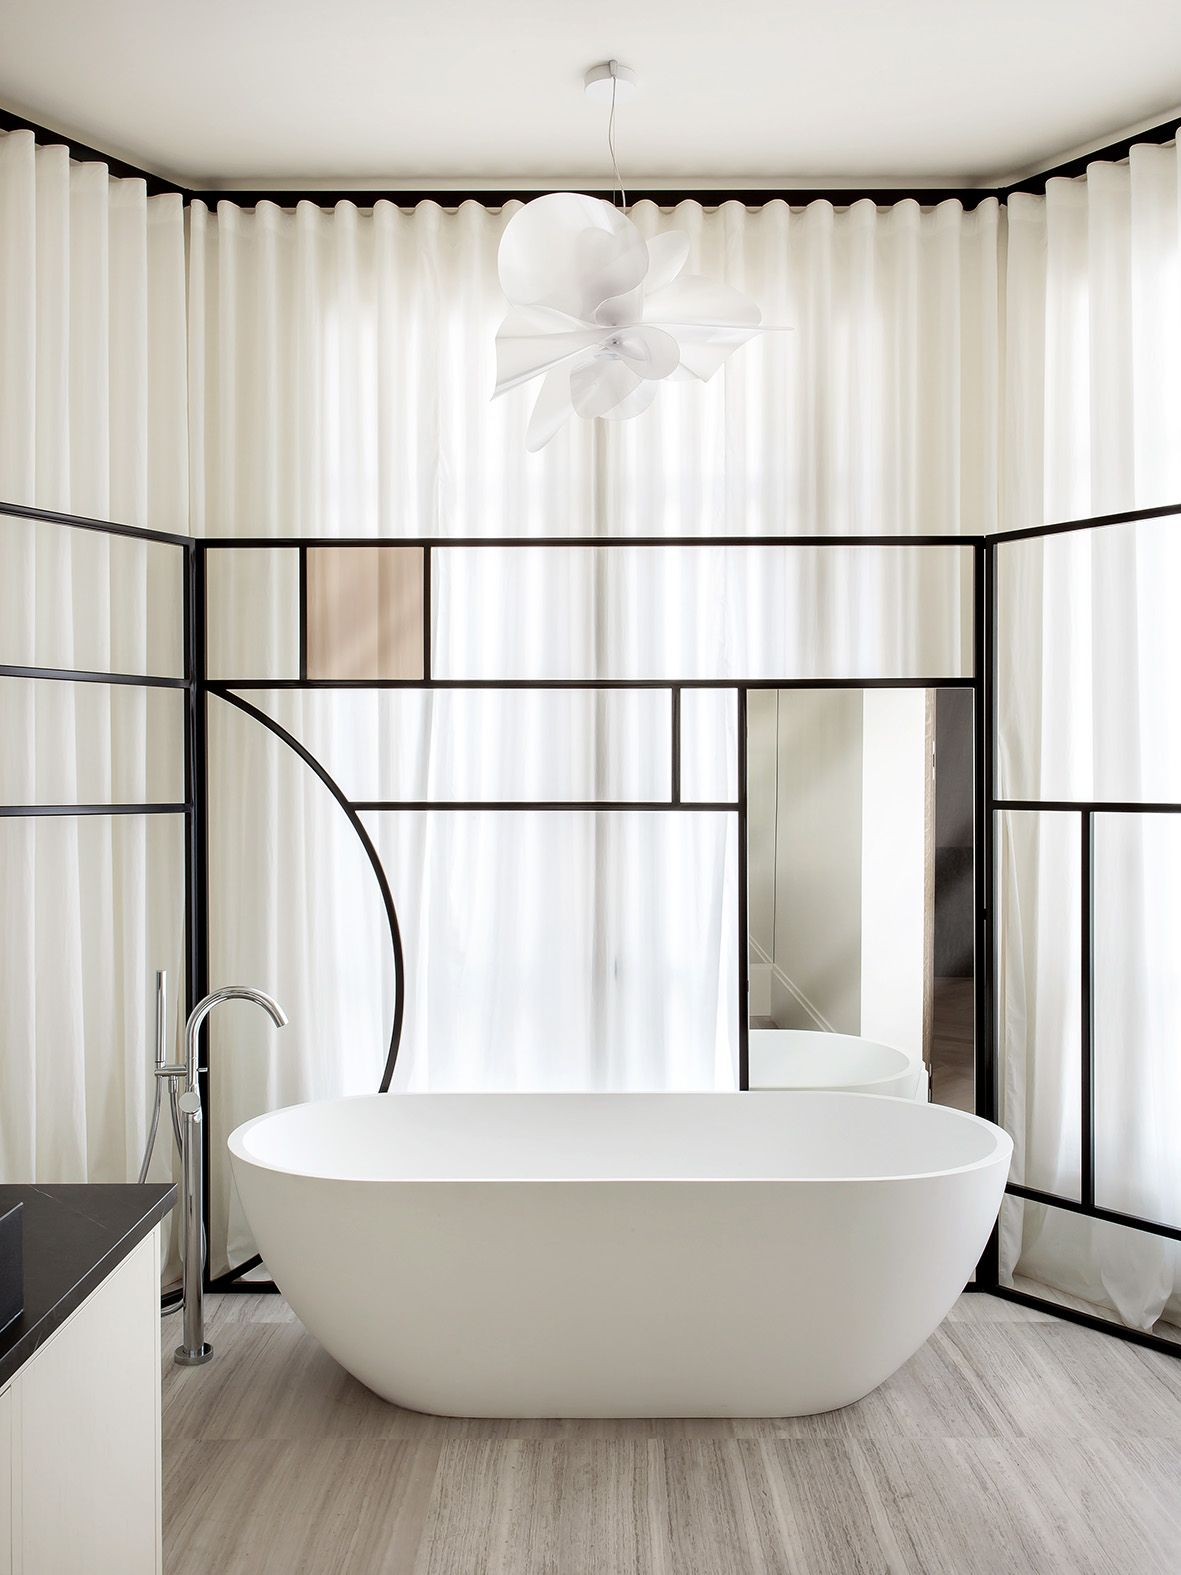 Ripplefold drapery on  ceiling mounted track adding softness to all of those hard surfaces also savioparsons architects minimalist interiors in pinterest rh